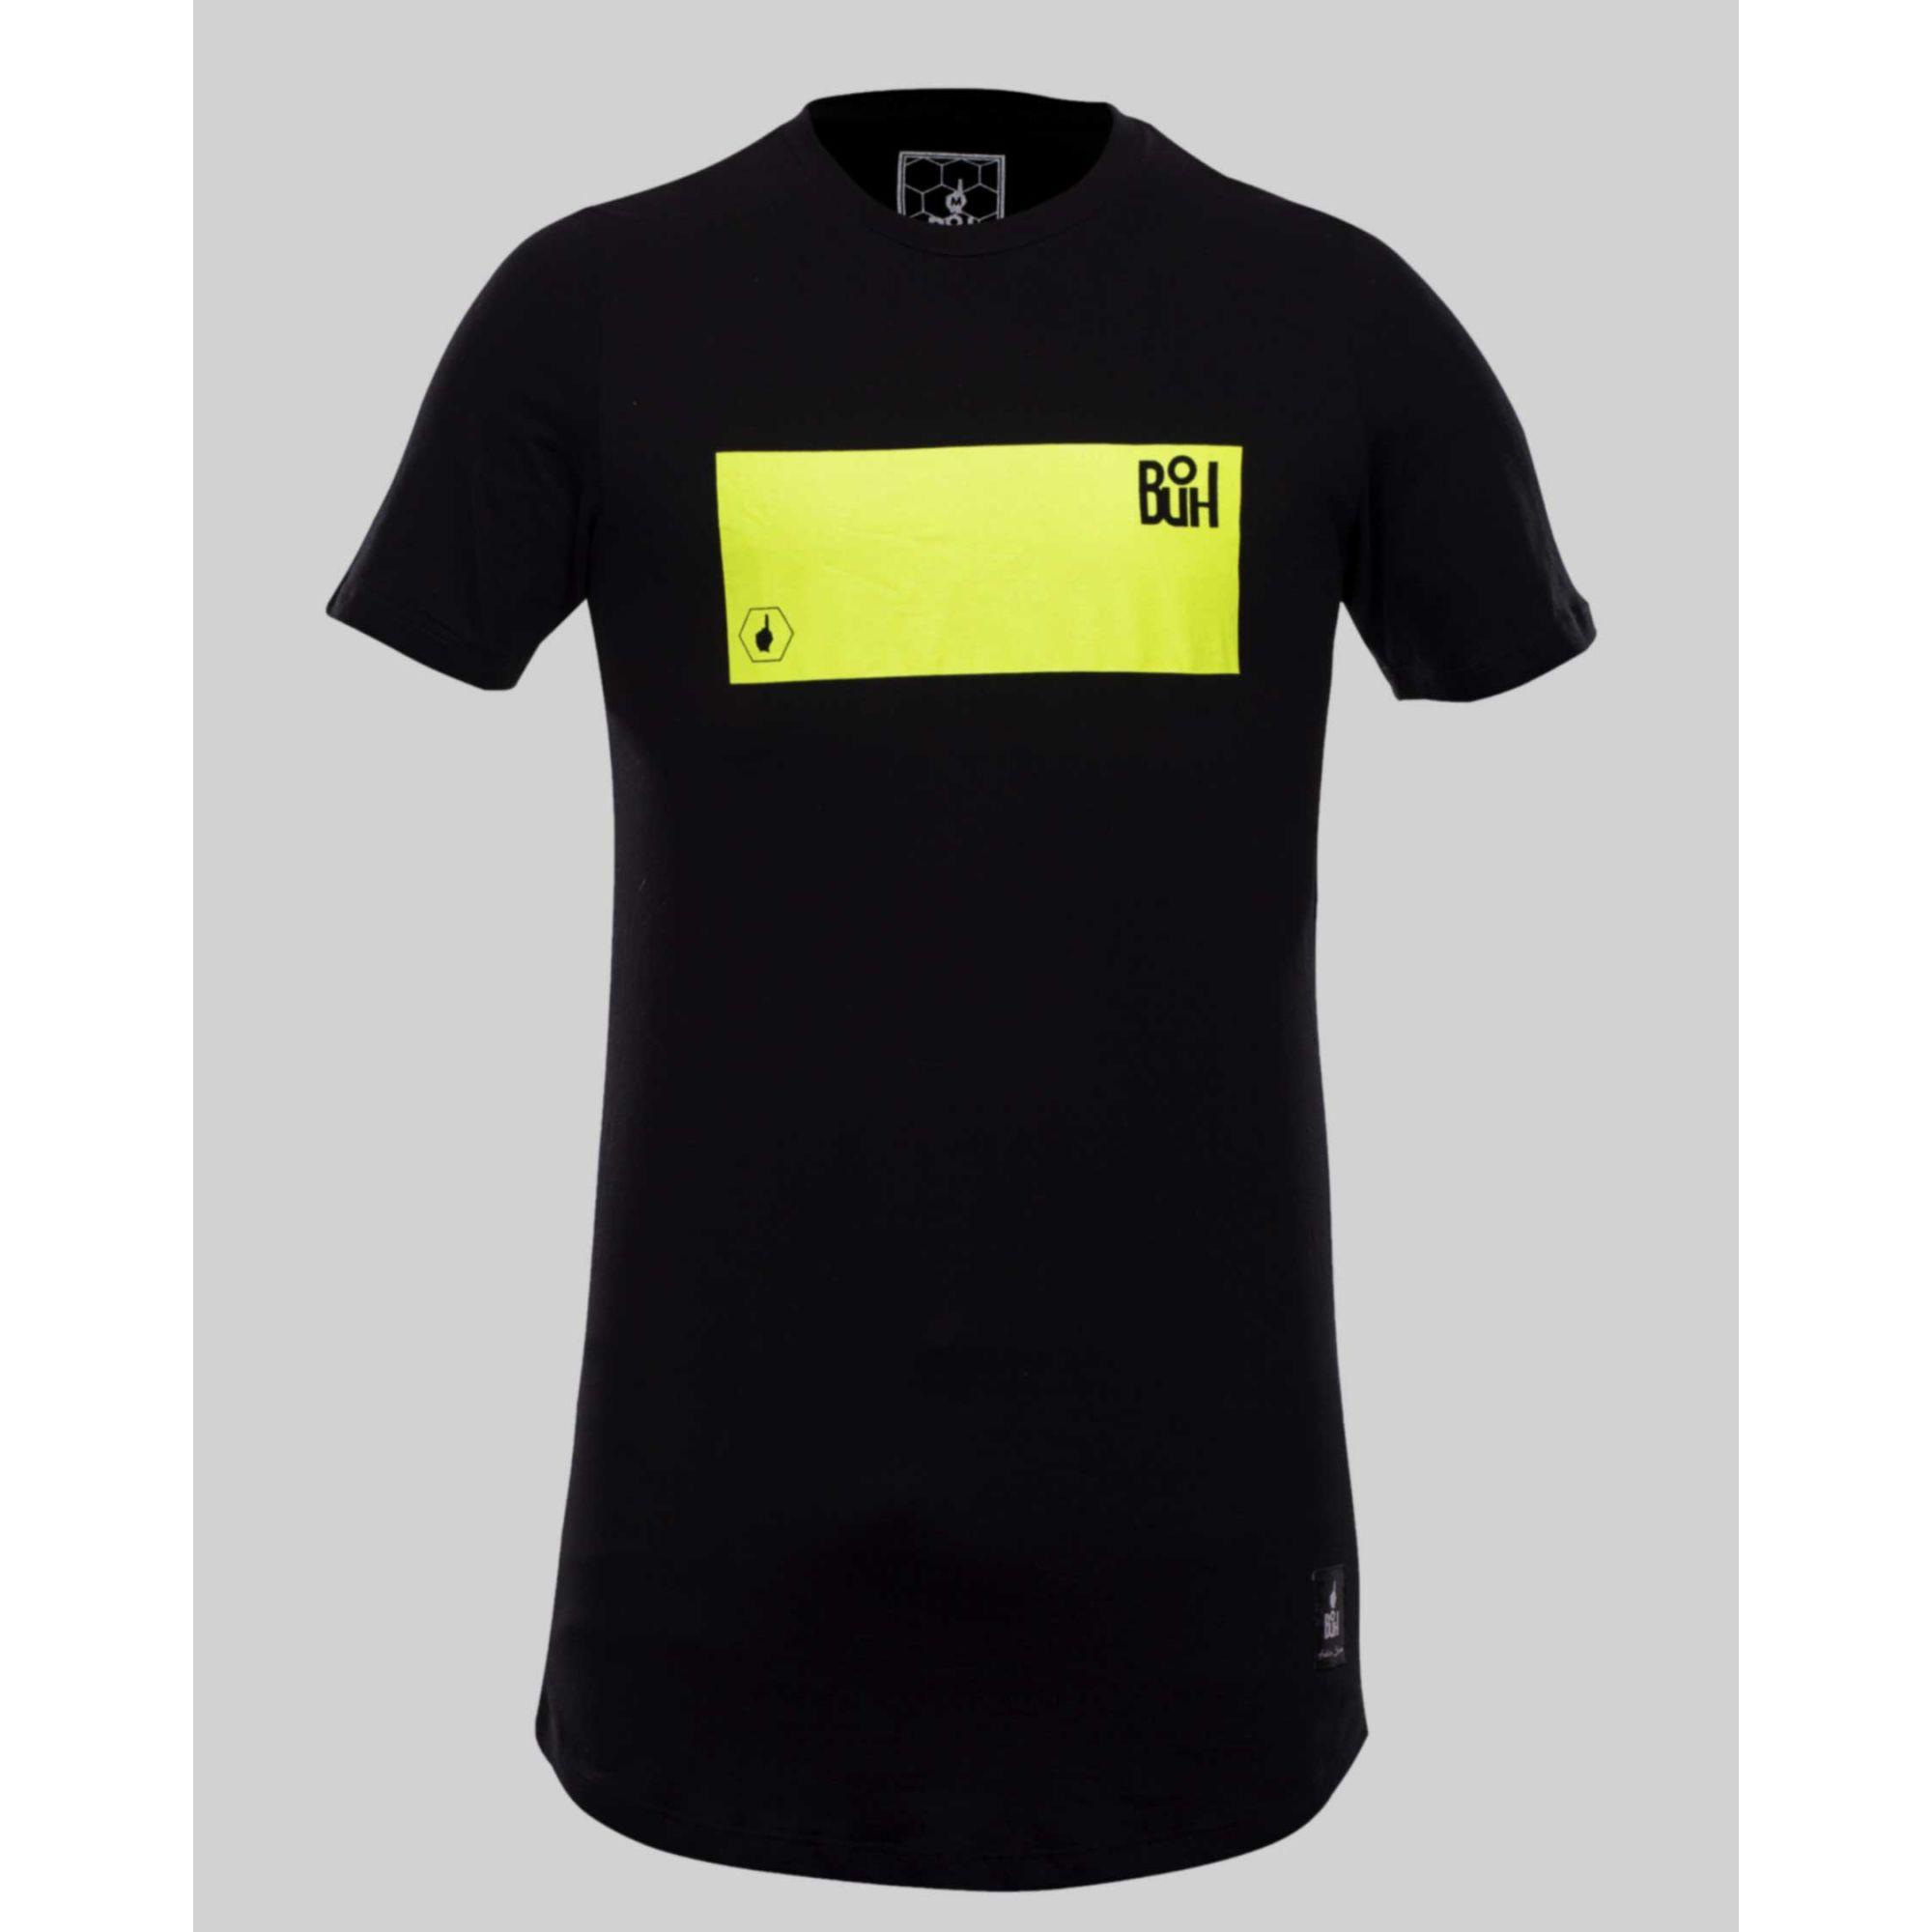 Camiseta Buh Fluor Square Black